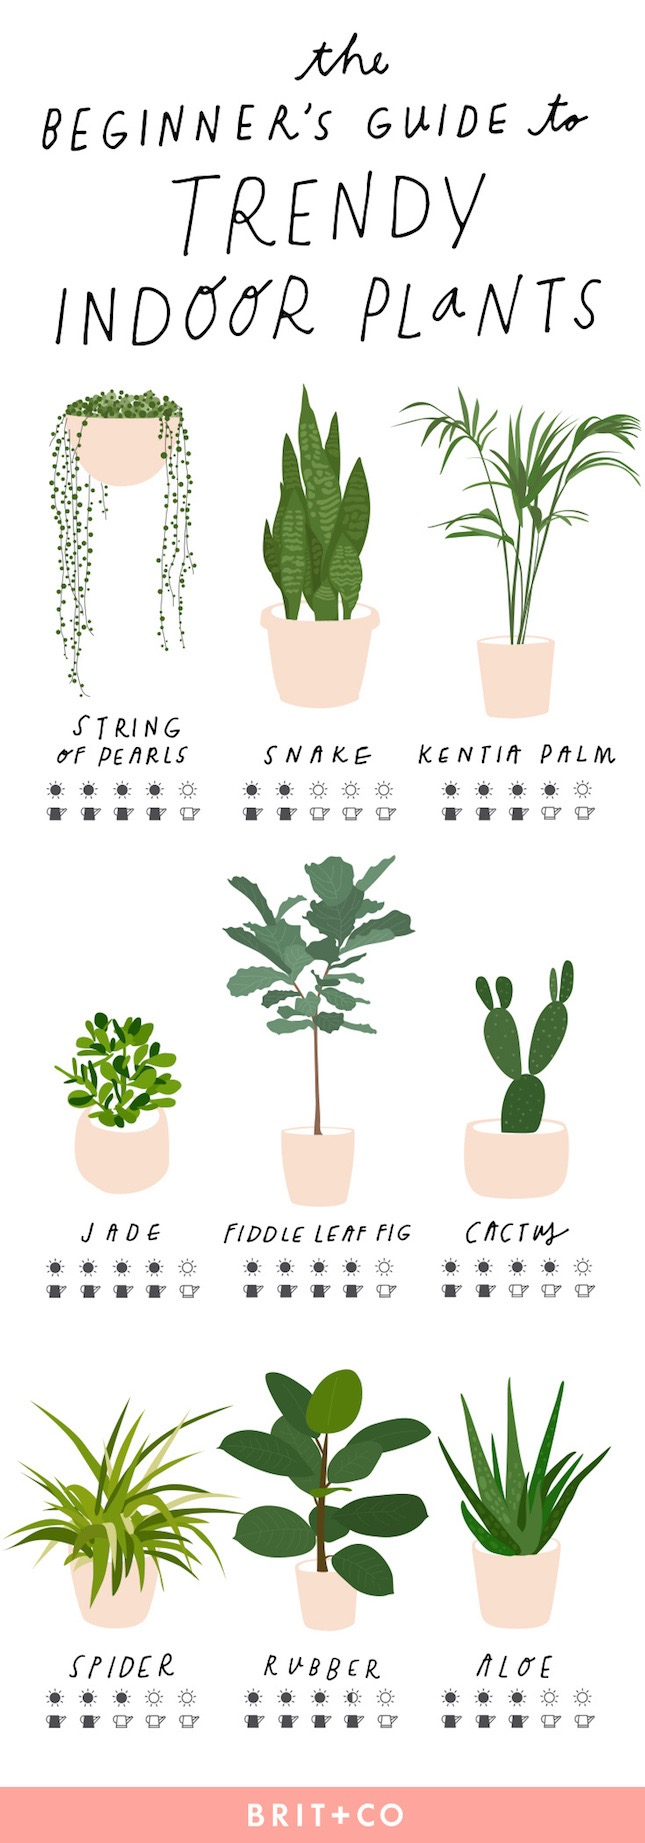 Ultimate-Guide-Trendy-Indoor-Plants-11